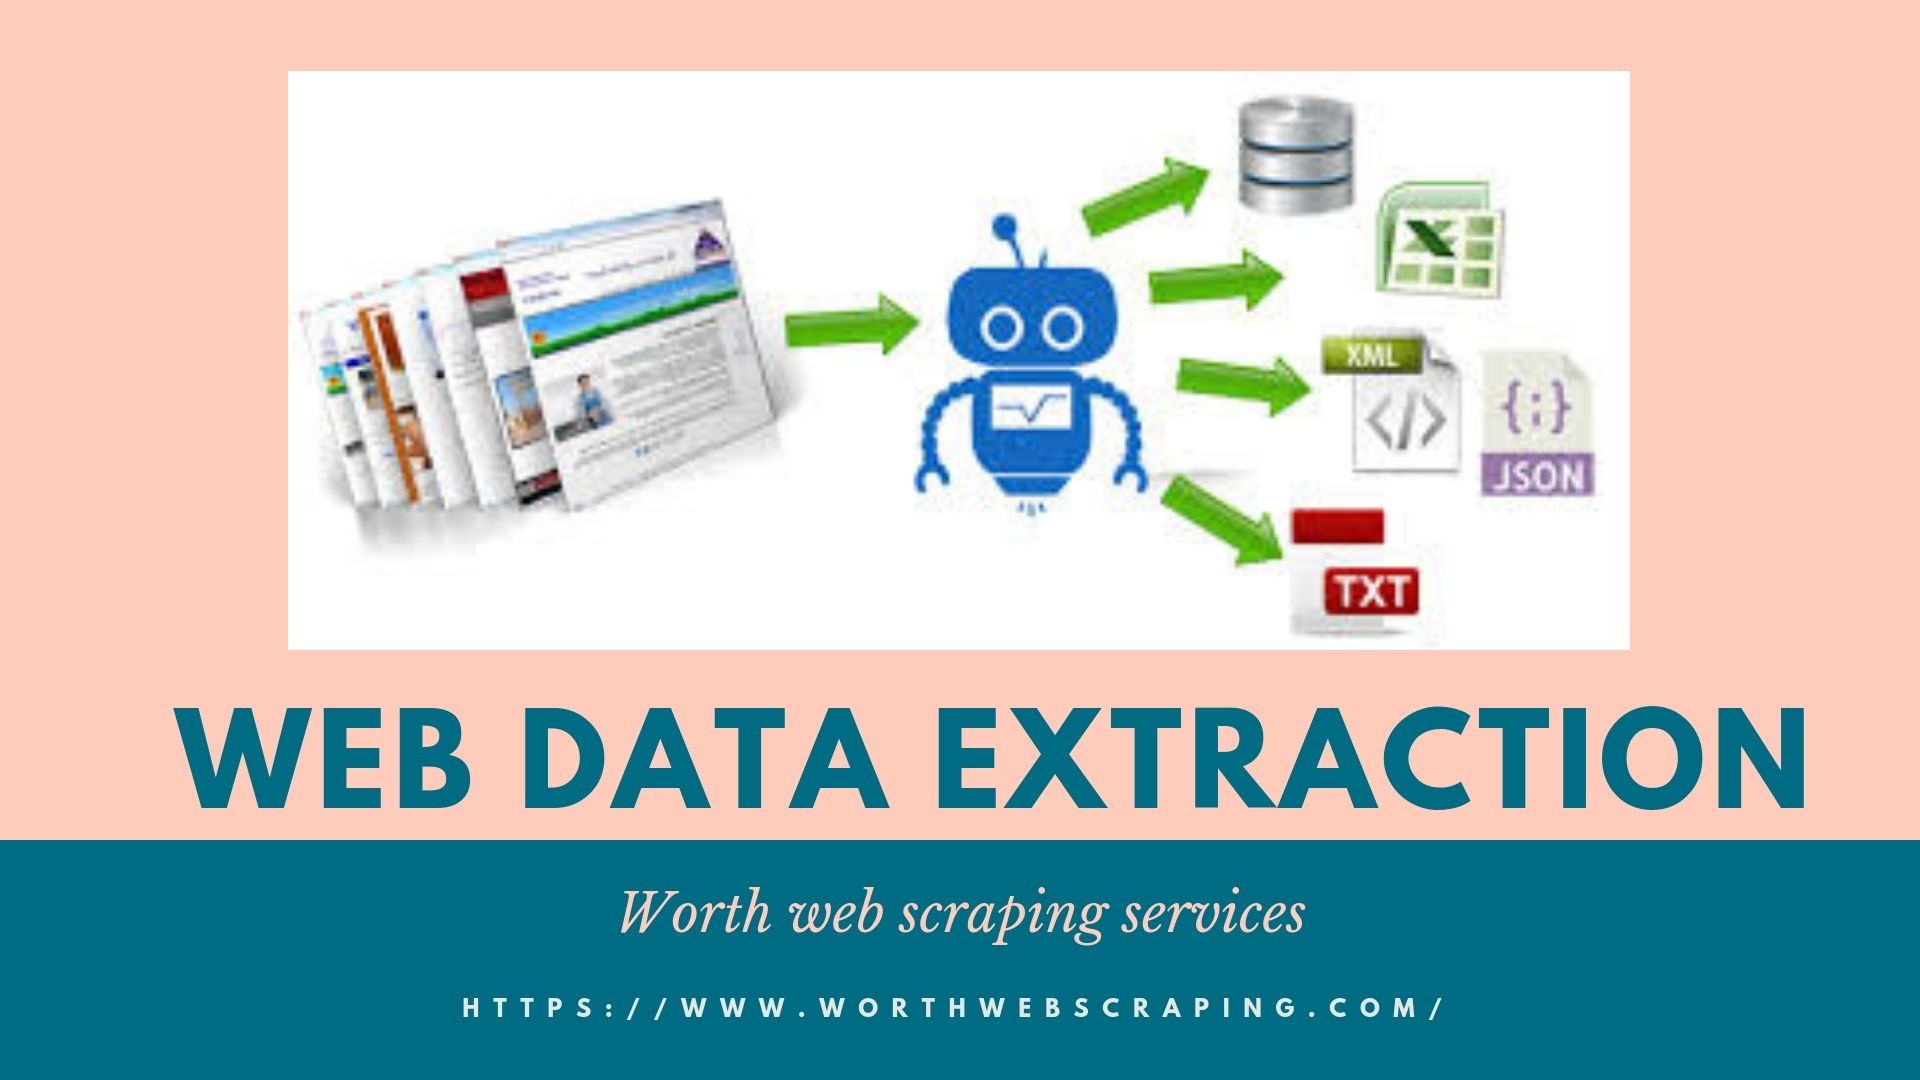 Web data extraction services to extract data from web pages